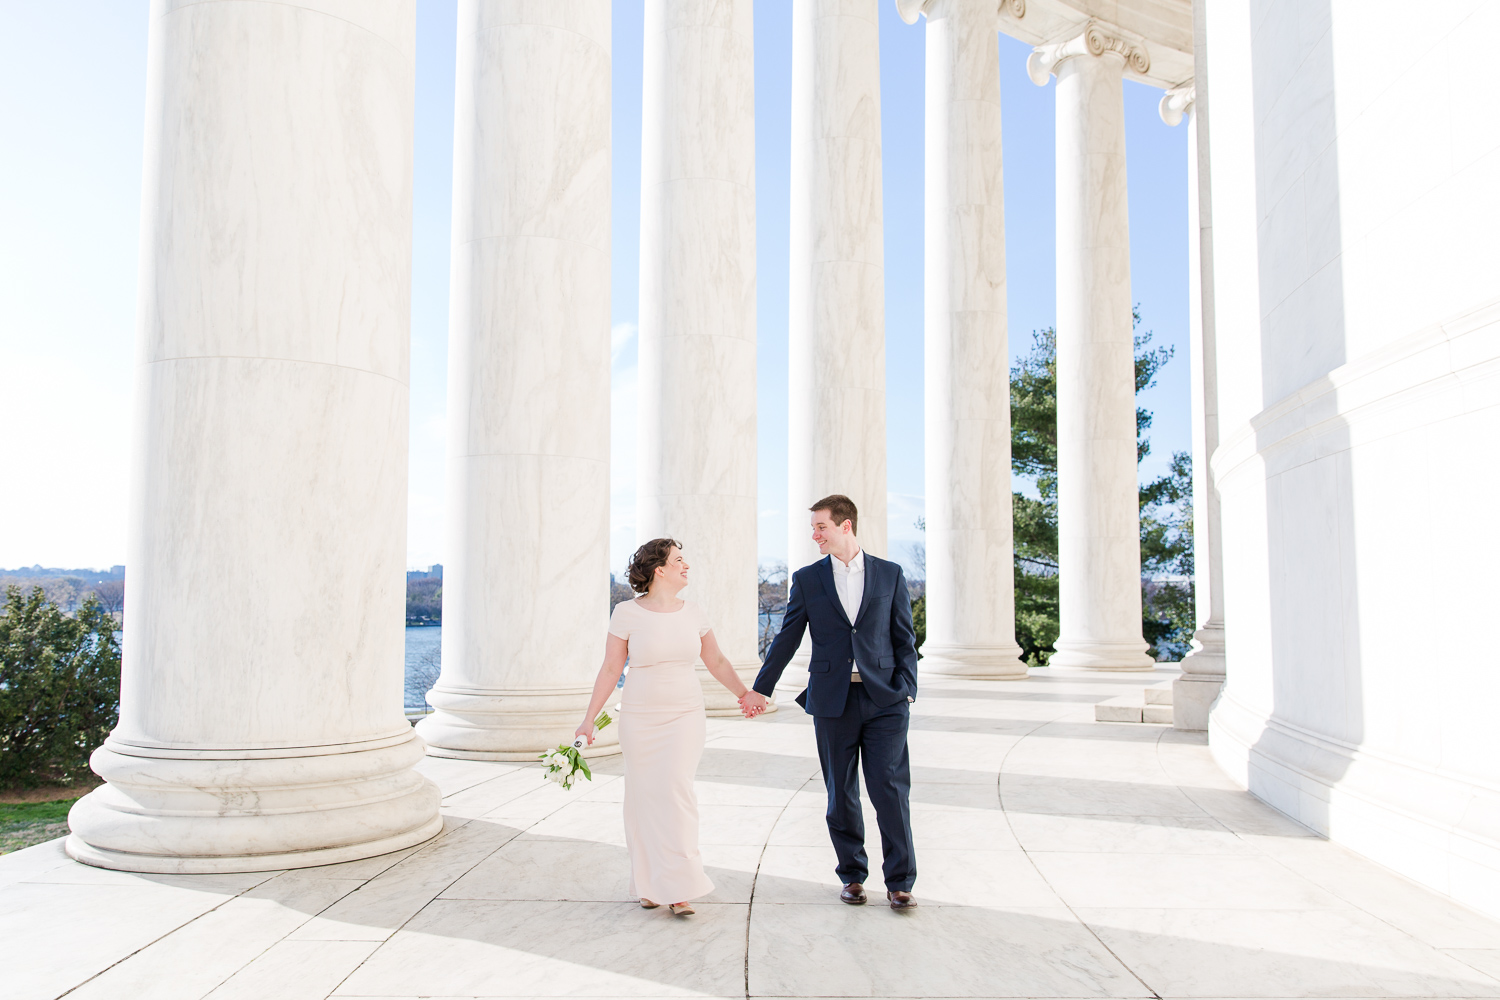 jefferson-memorial-wedding-photography-4.jpg